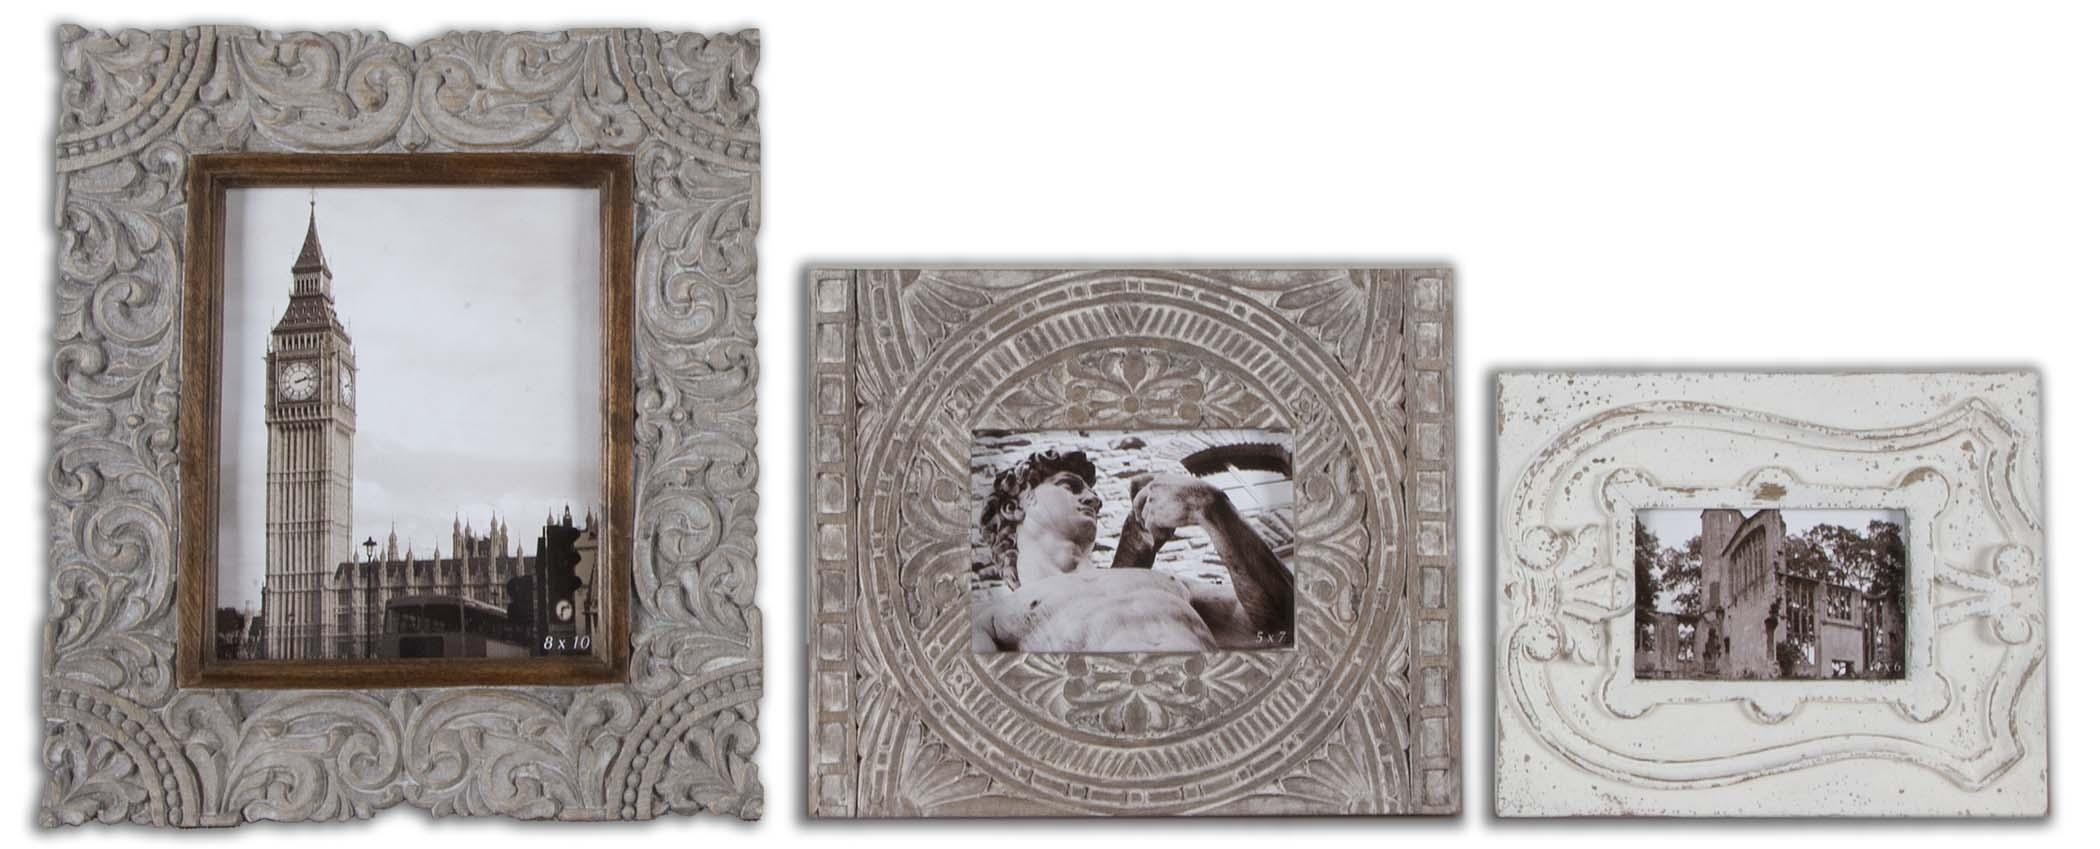 Uttermost Accessories Askan Antique White Photo Frames - Item Number: 18556